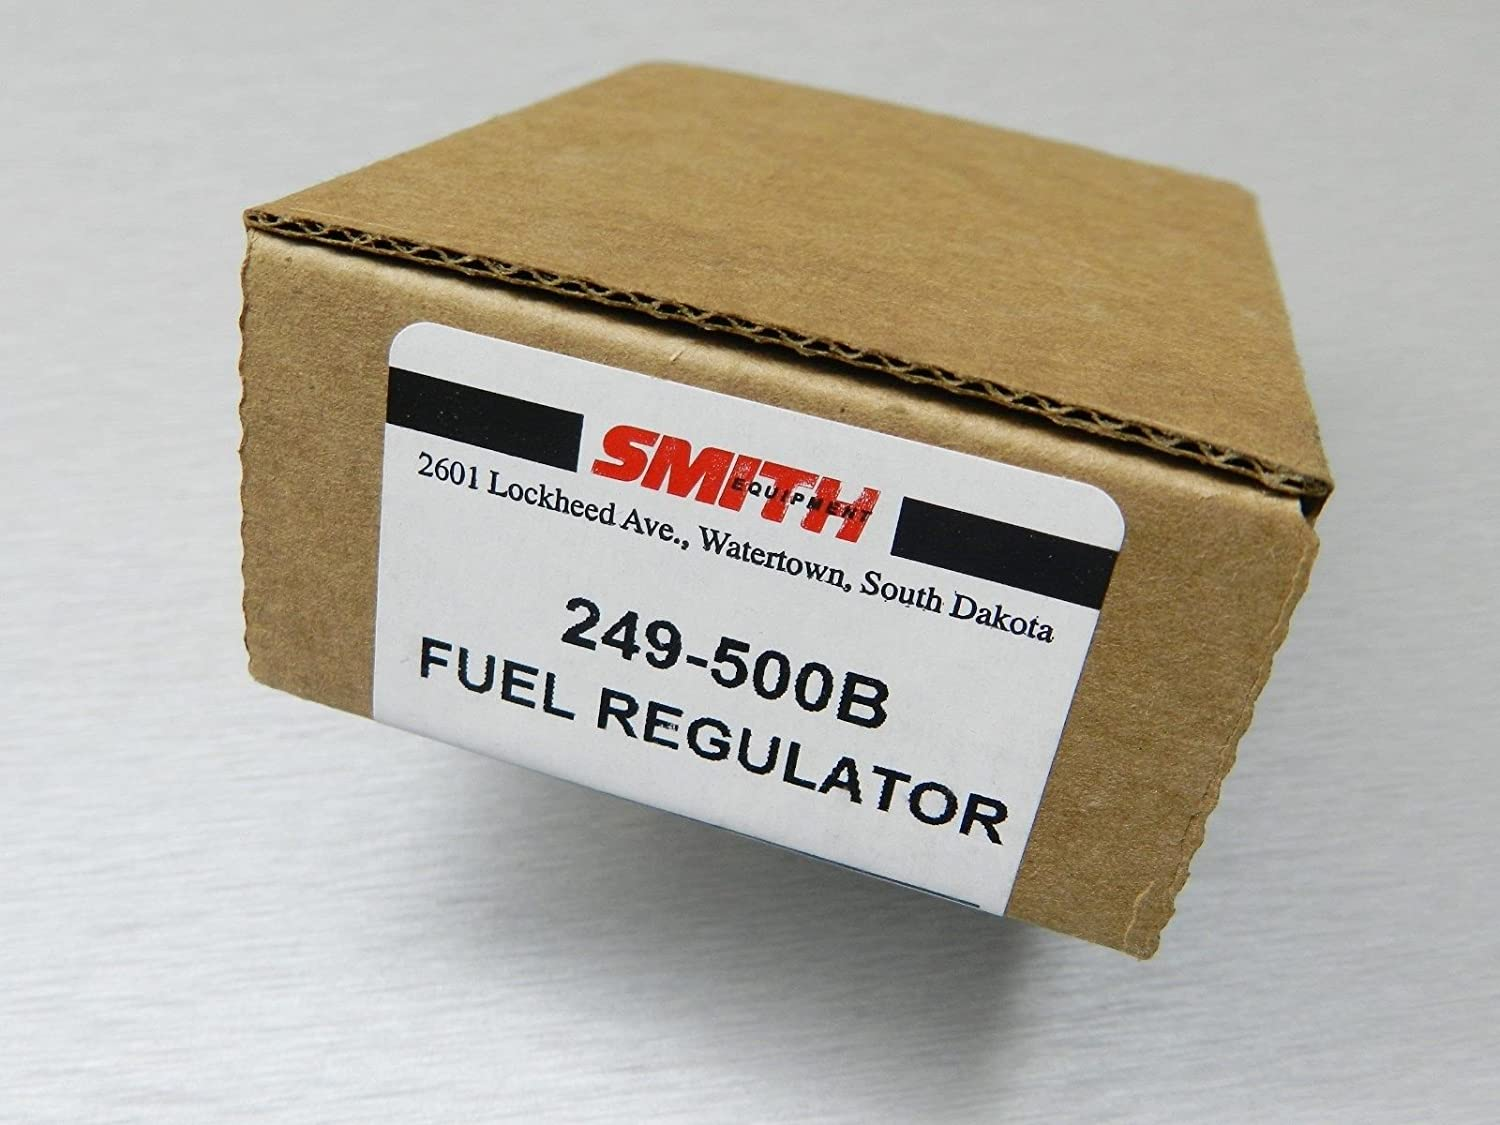 E 7 LITTLE TORCH SMITH REGULATOR PRESET FUEL PROPANE 249-500B FOR DISPOSABLE TANK